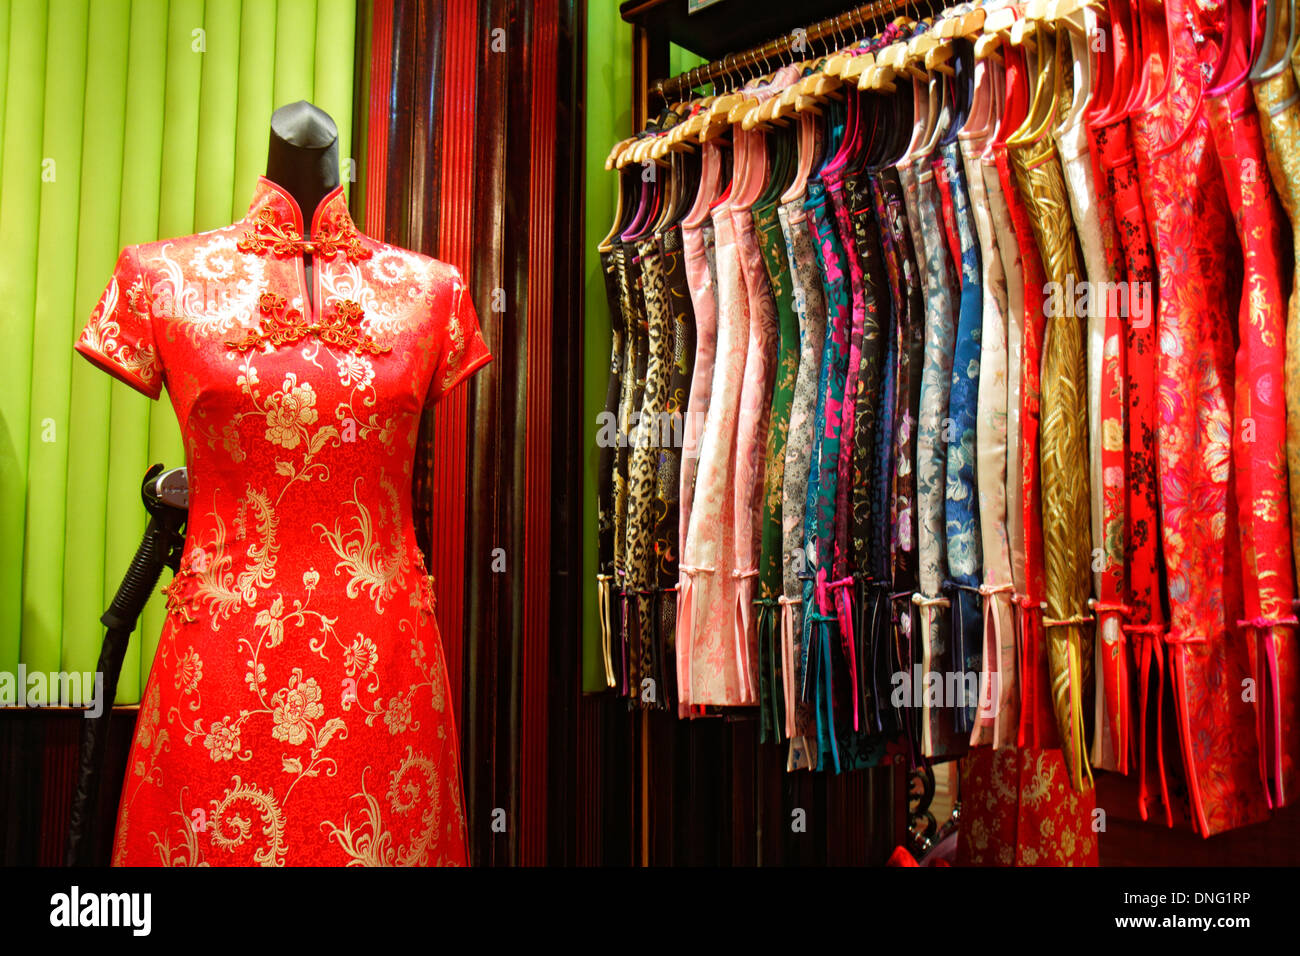 3cdfcc656 Beijing China The Malls at Oriental Plaza shopping sale display women's clothing  dresses traditional influences fashion